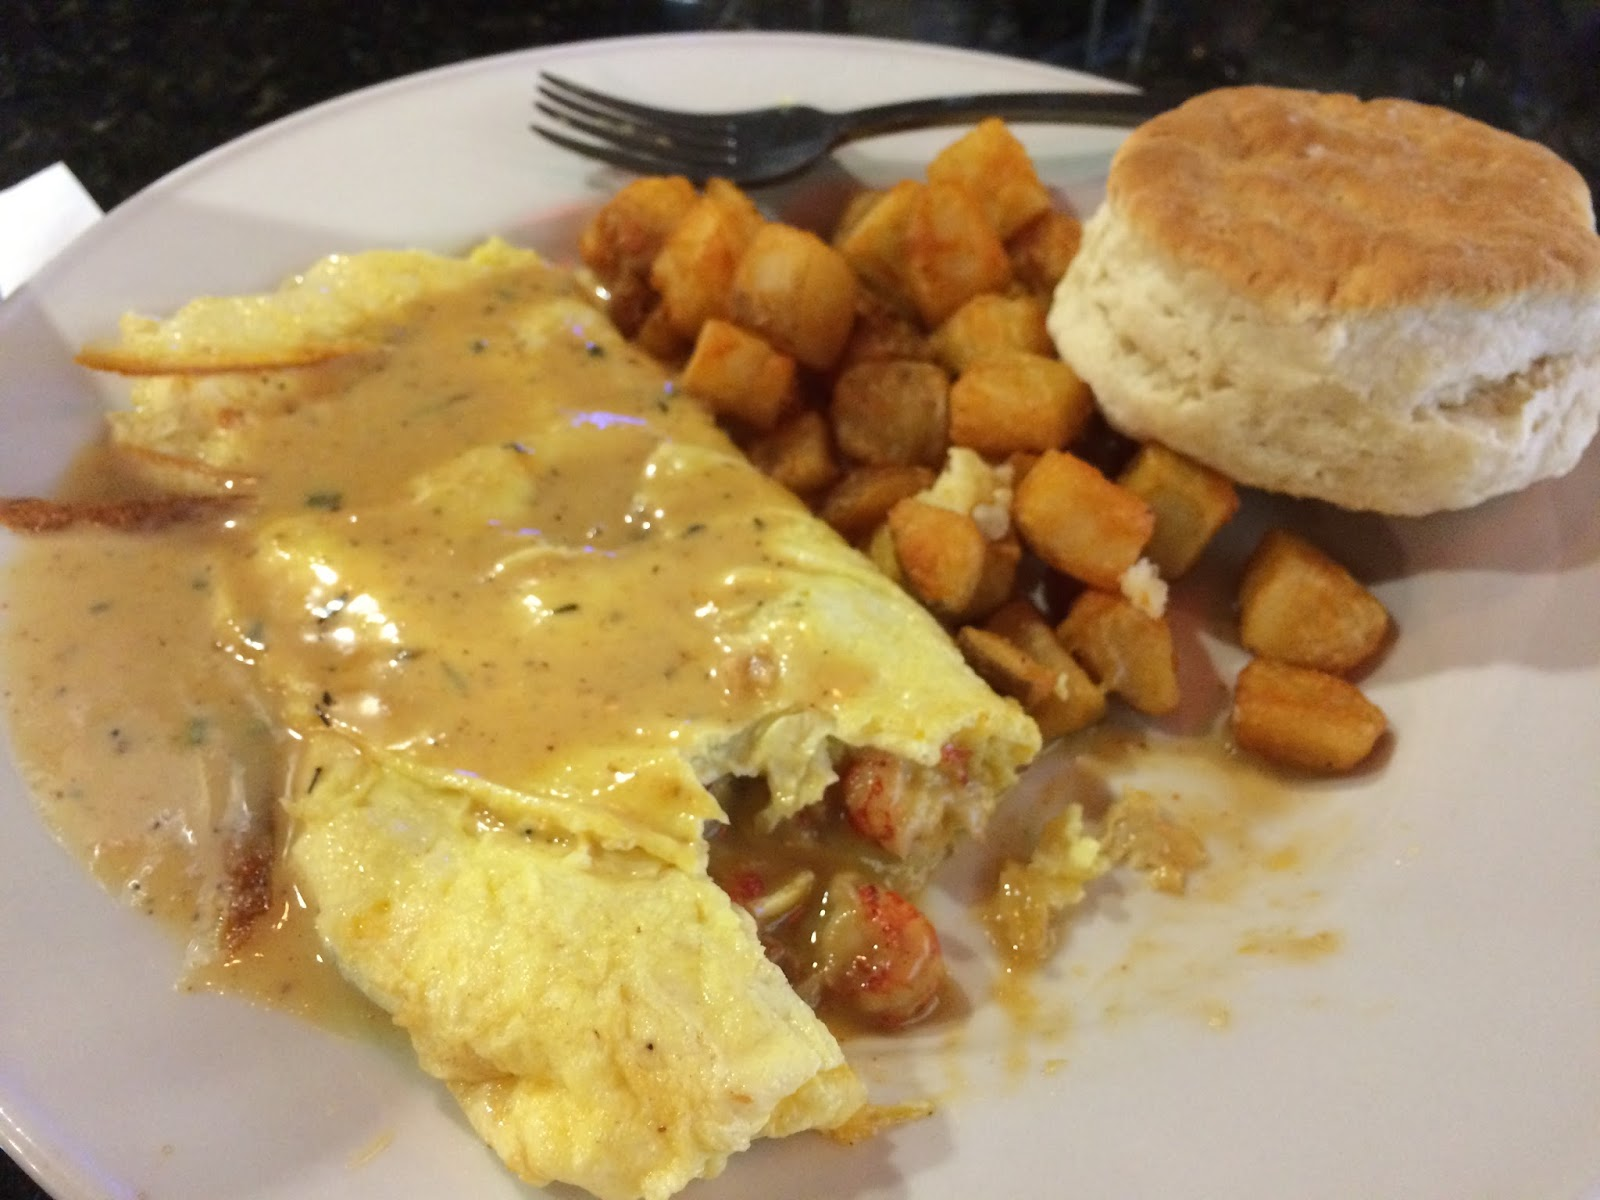 New Orleans style omelette